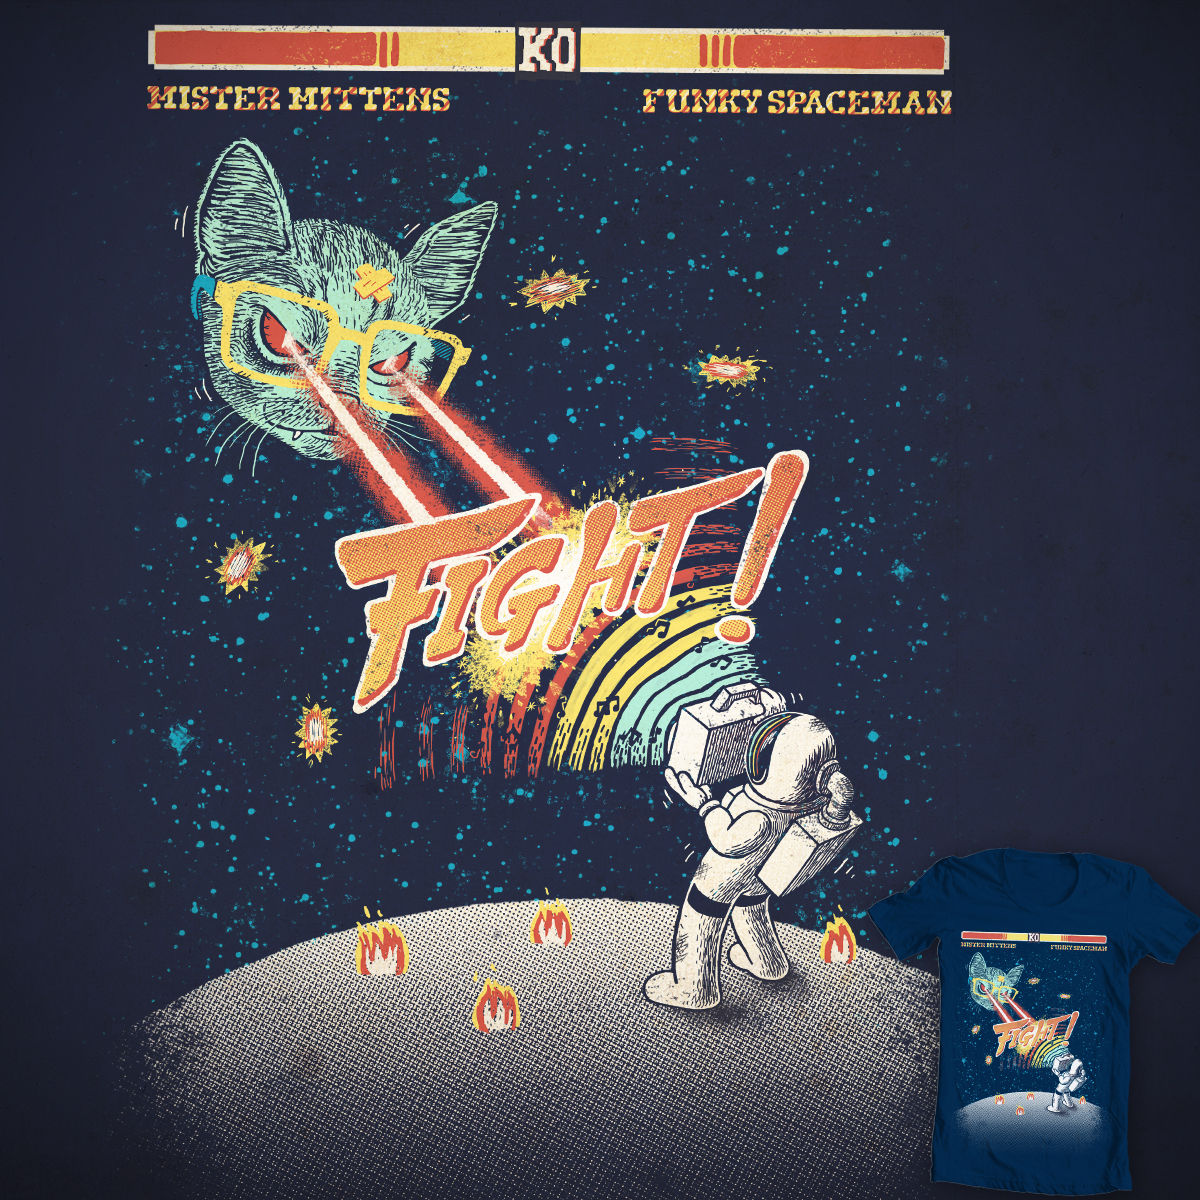 Mr Mittens VS funky spaceman by c-royal on Threadless